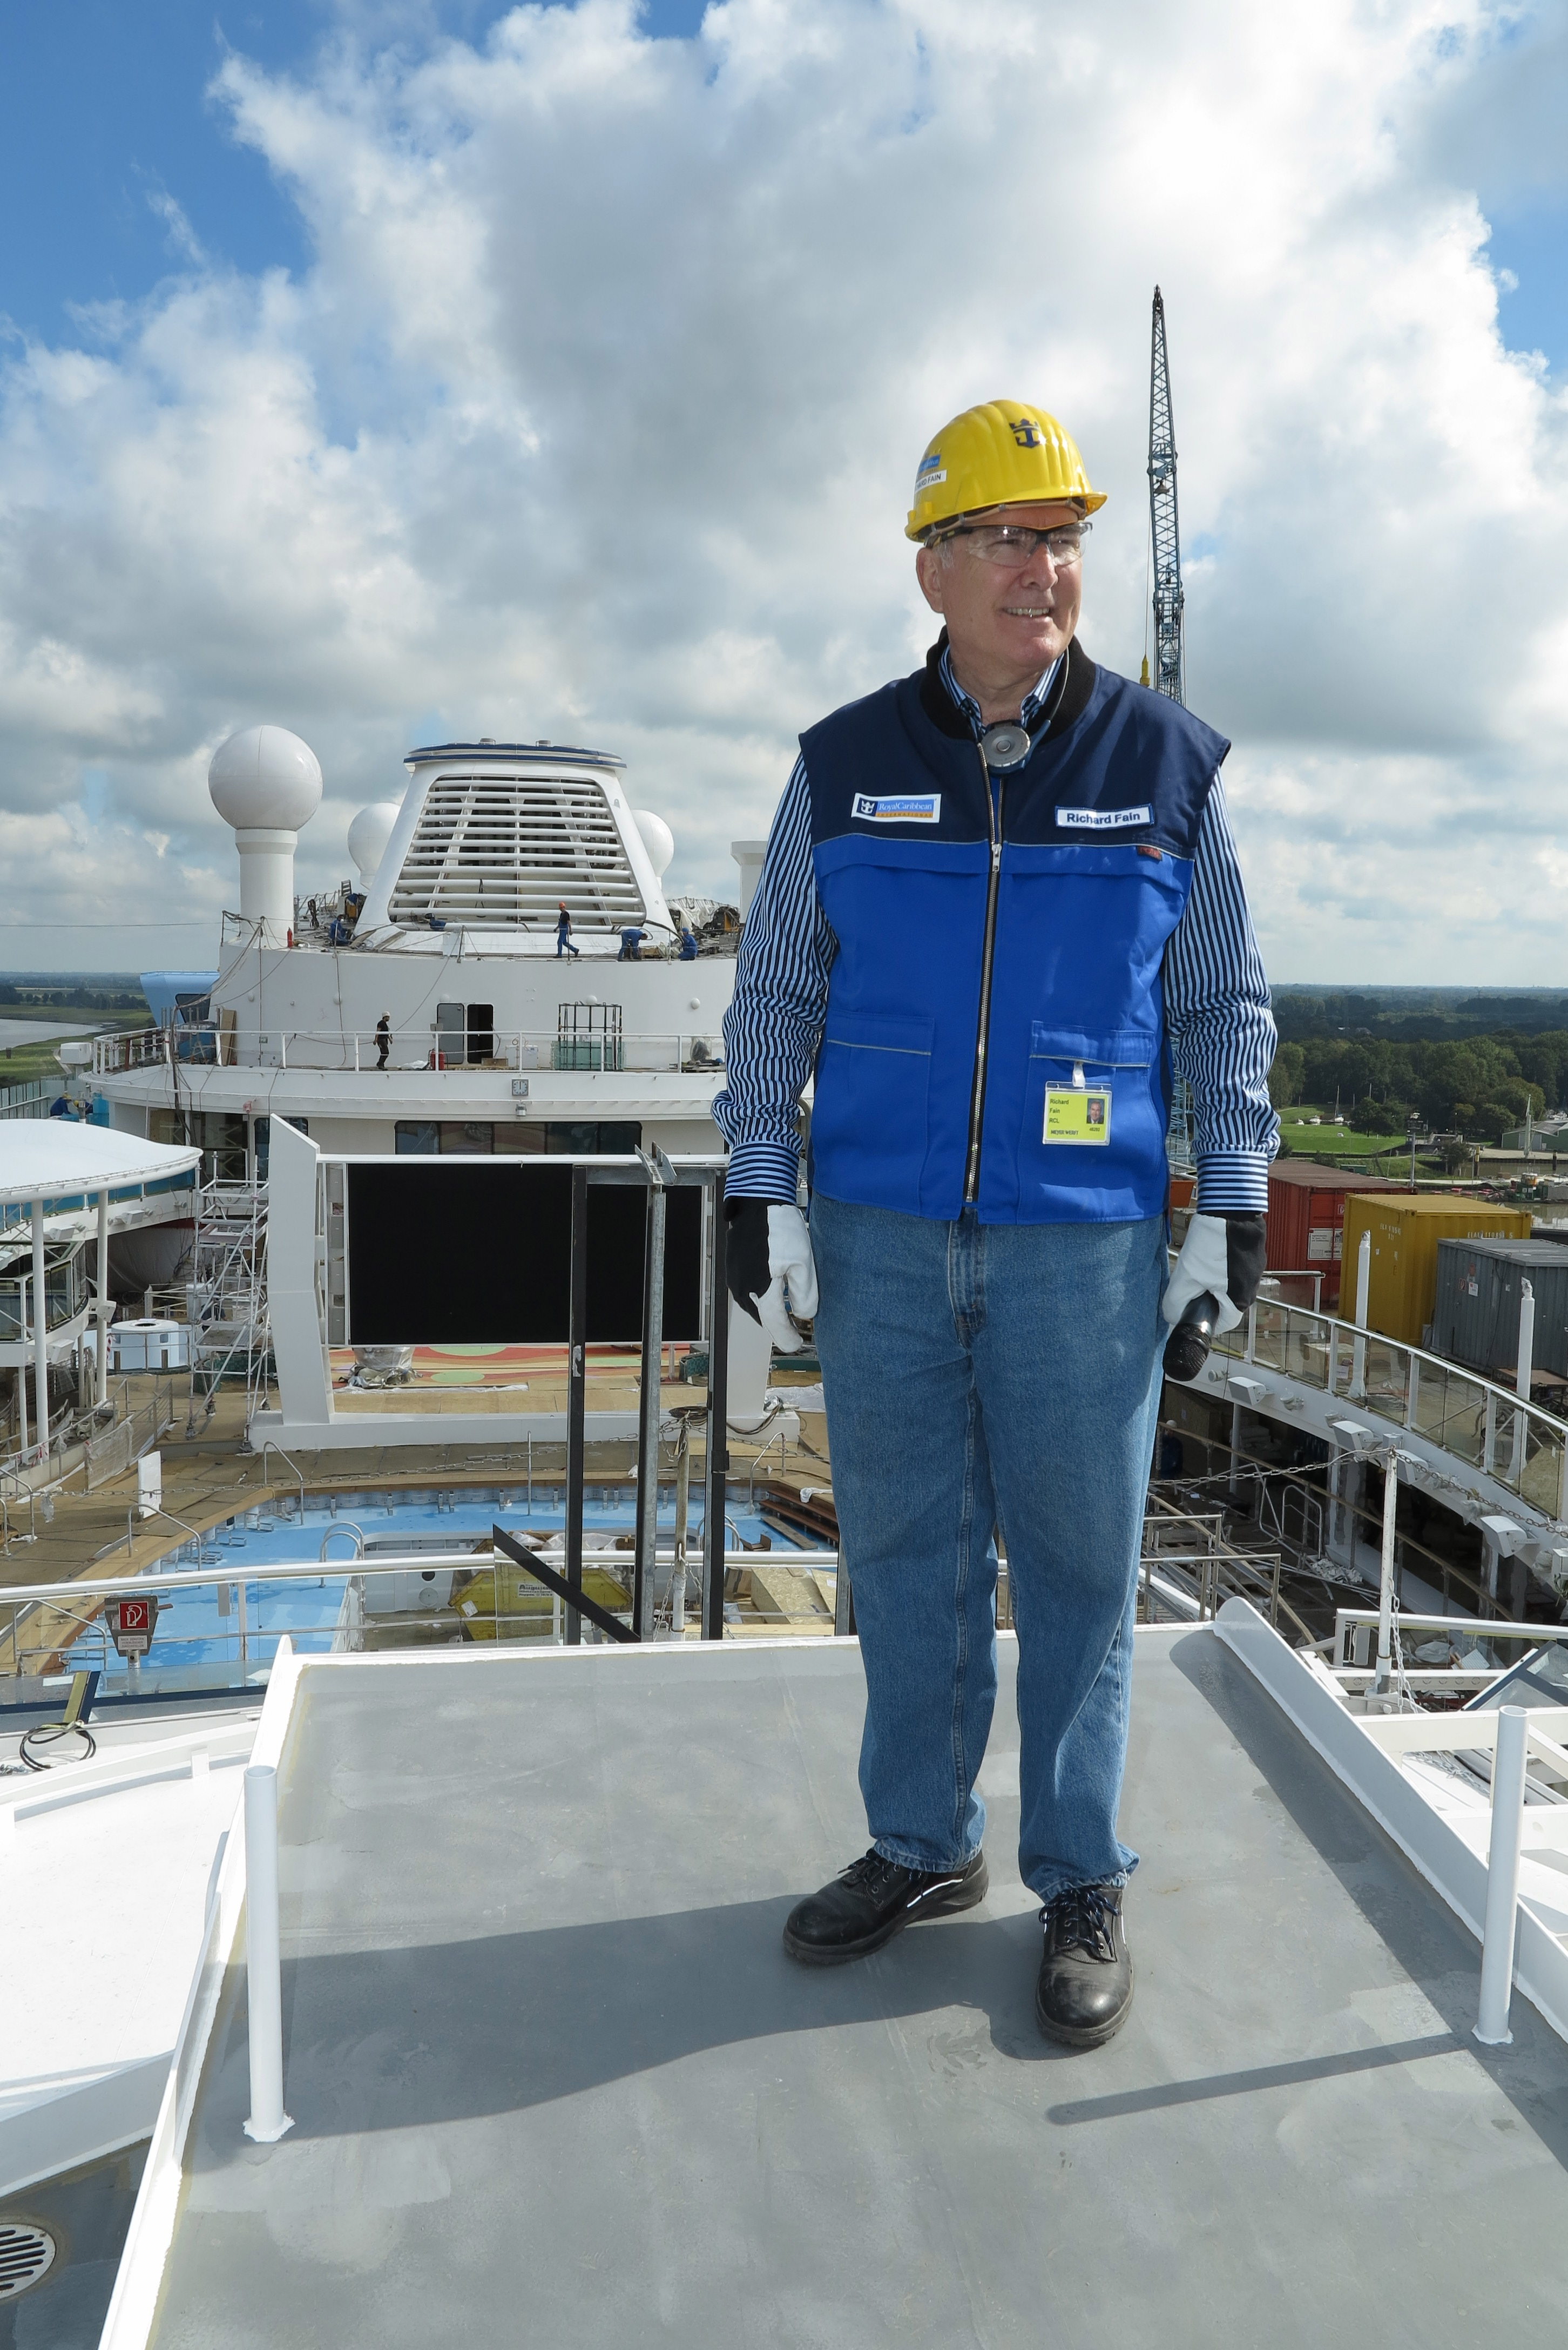 A Guided Tour Of Quantum Of The Seas By Royal Caribbean